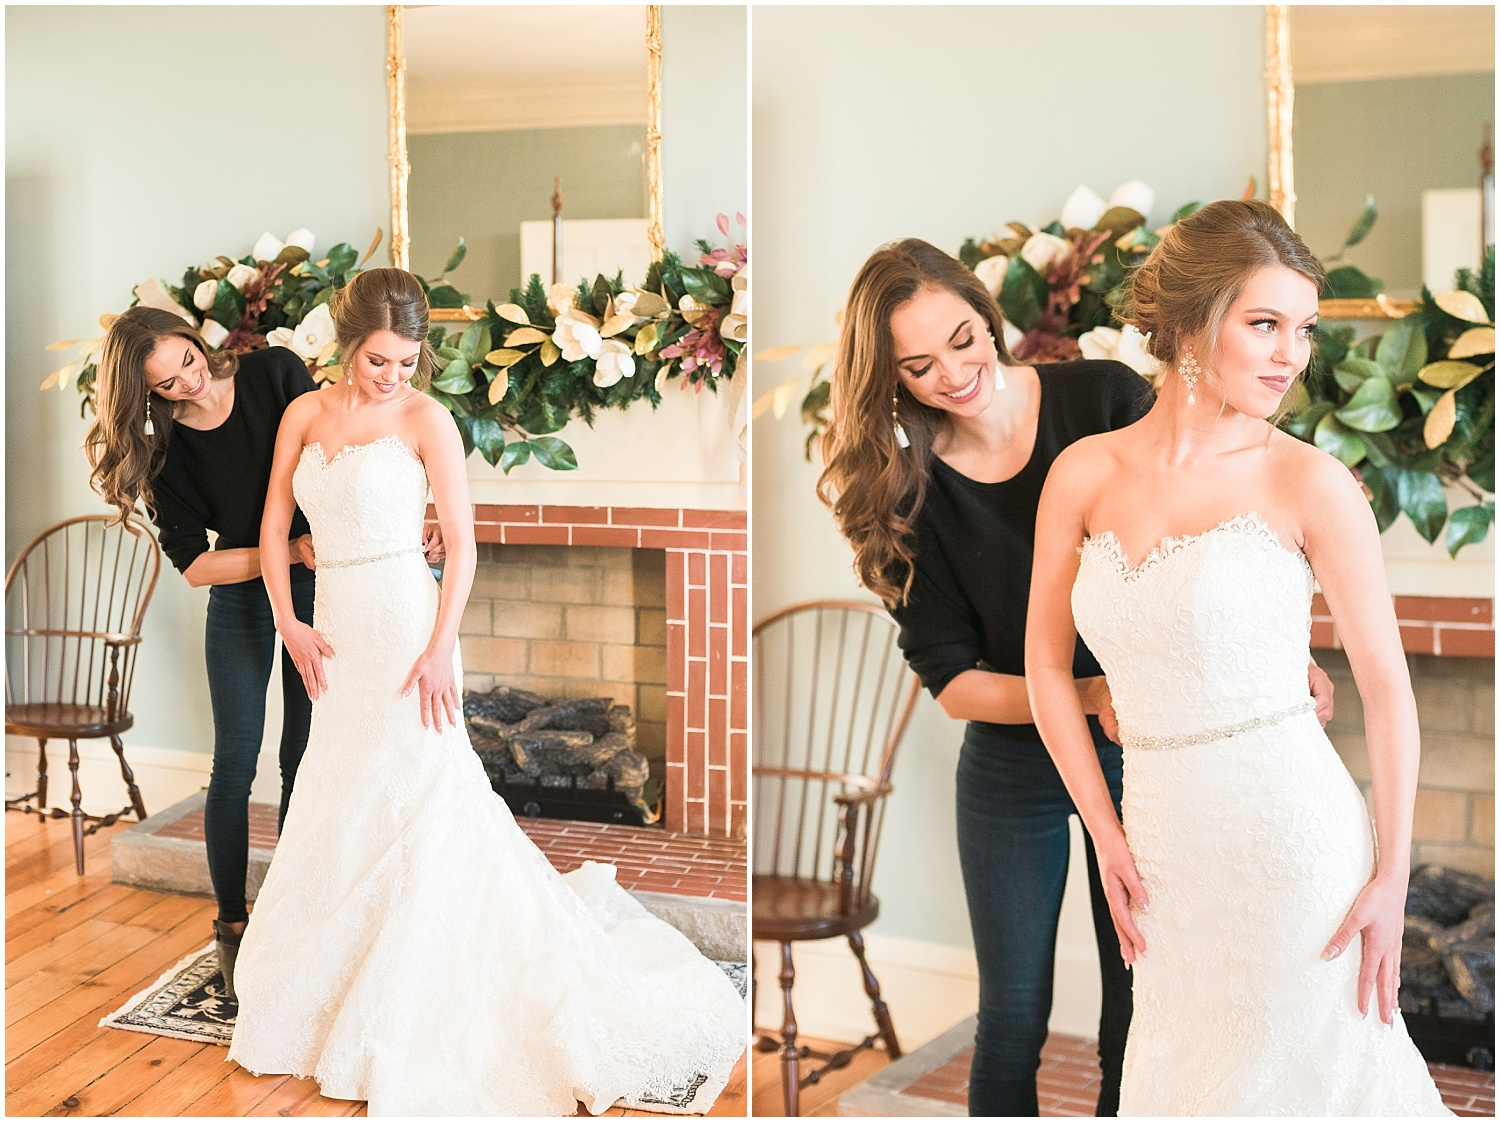 Maria will help you put together the bridal gown of your dreams!